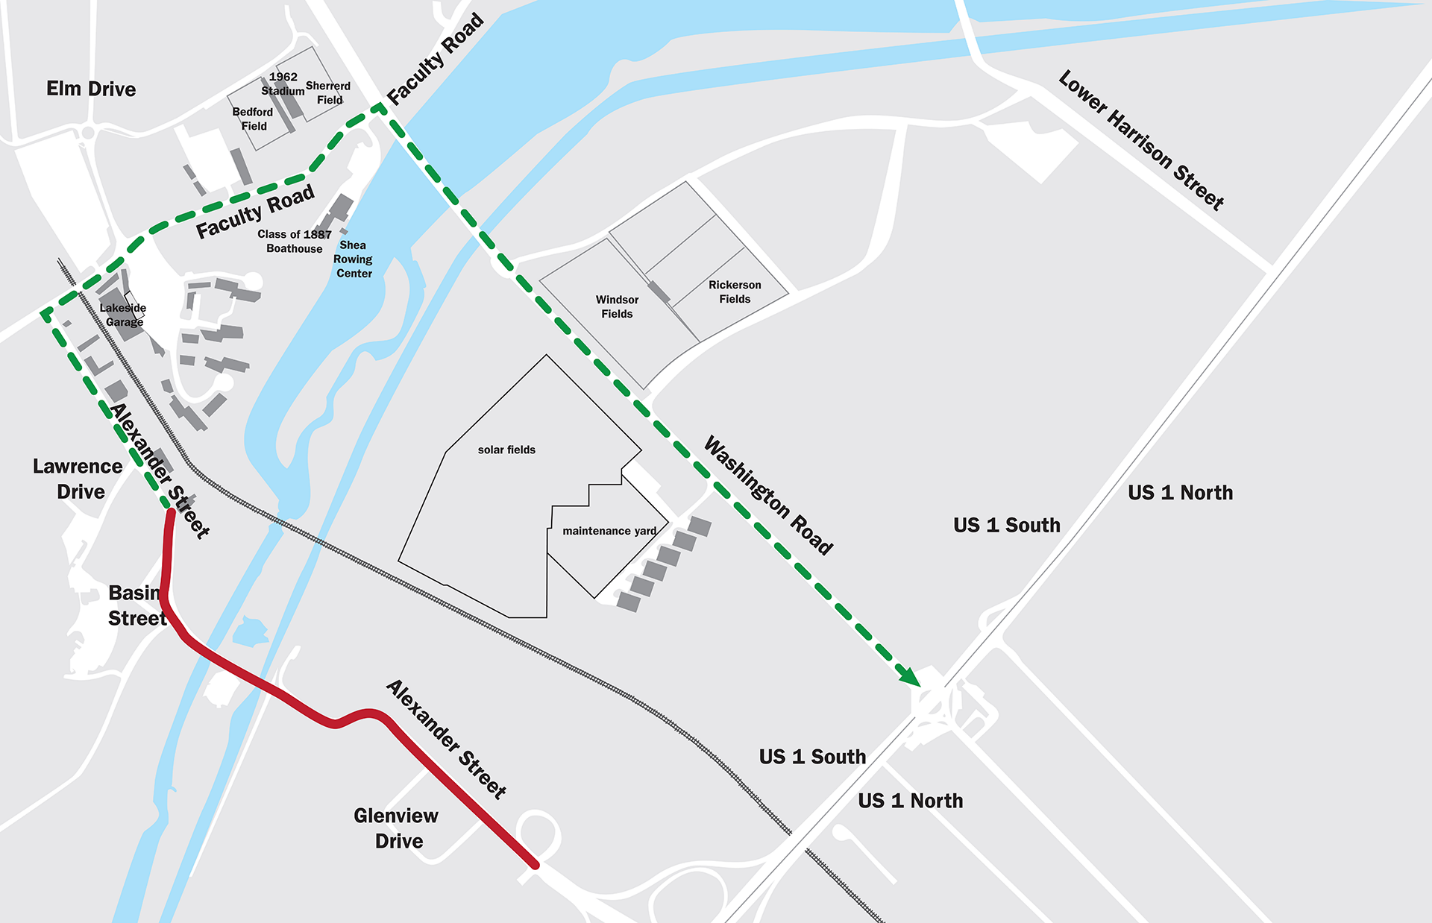 Alexander St bridge closure detour route